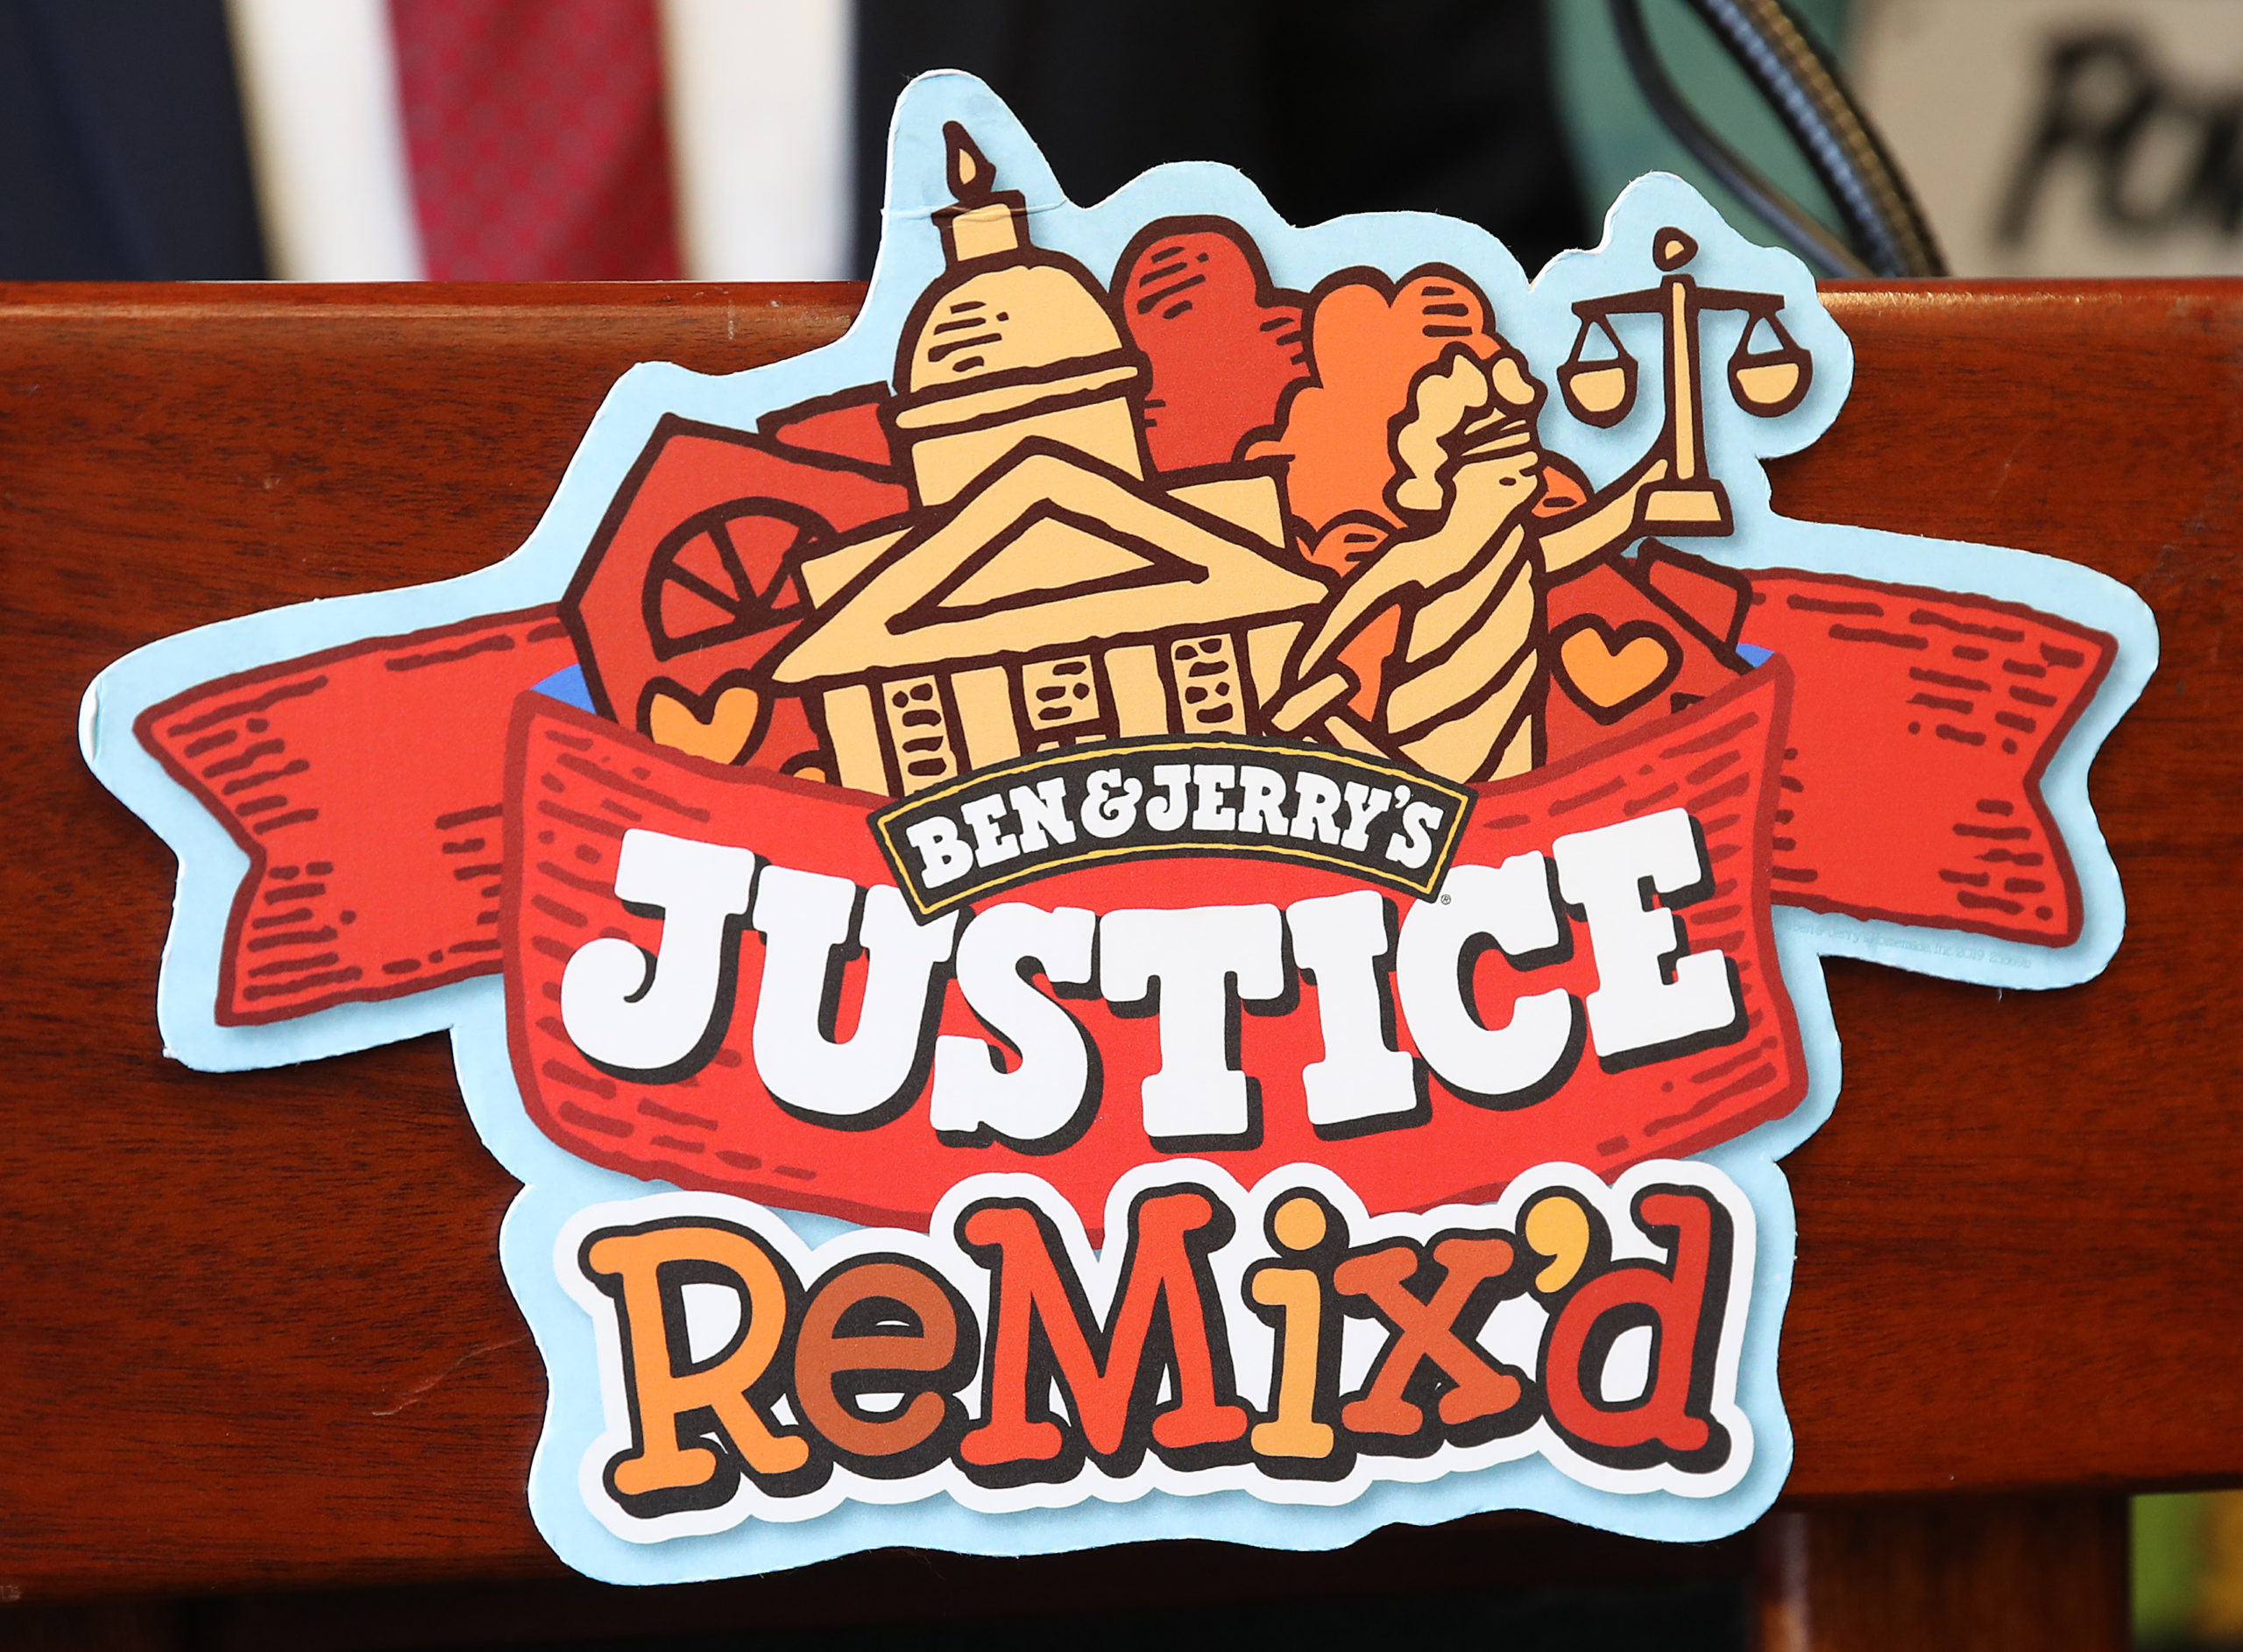 """WASHINGTON, DC - SEPTEMBER 03: Ben & Jerry's announced a new flavor, Justice Remix'd, at a press conference September 03, 2019 in Washington, DC. Ben & Jerry's launched the new flavor in conjunction with the civil rights organization, Advancement Project, to """"spotlight structural racism in a broken criminal legal system"""". (Photo by Win McNamee/Getty Images)"""